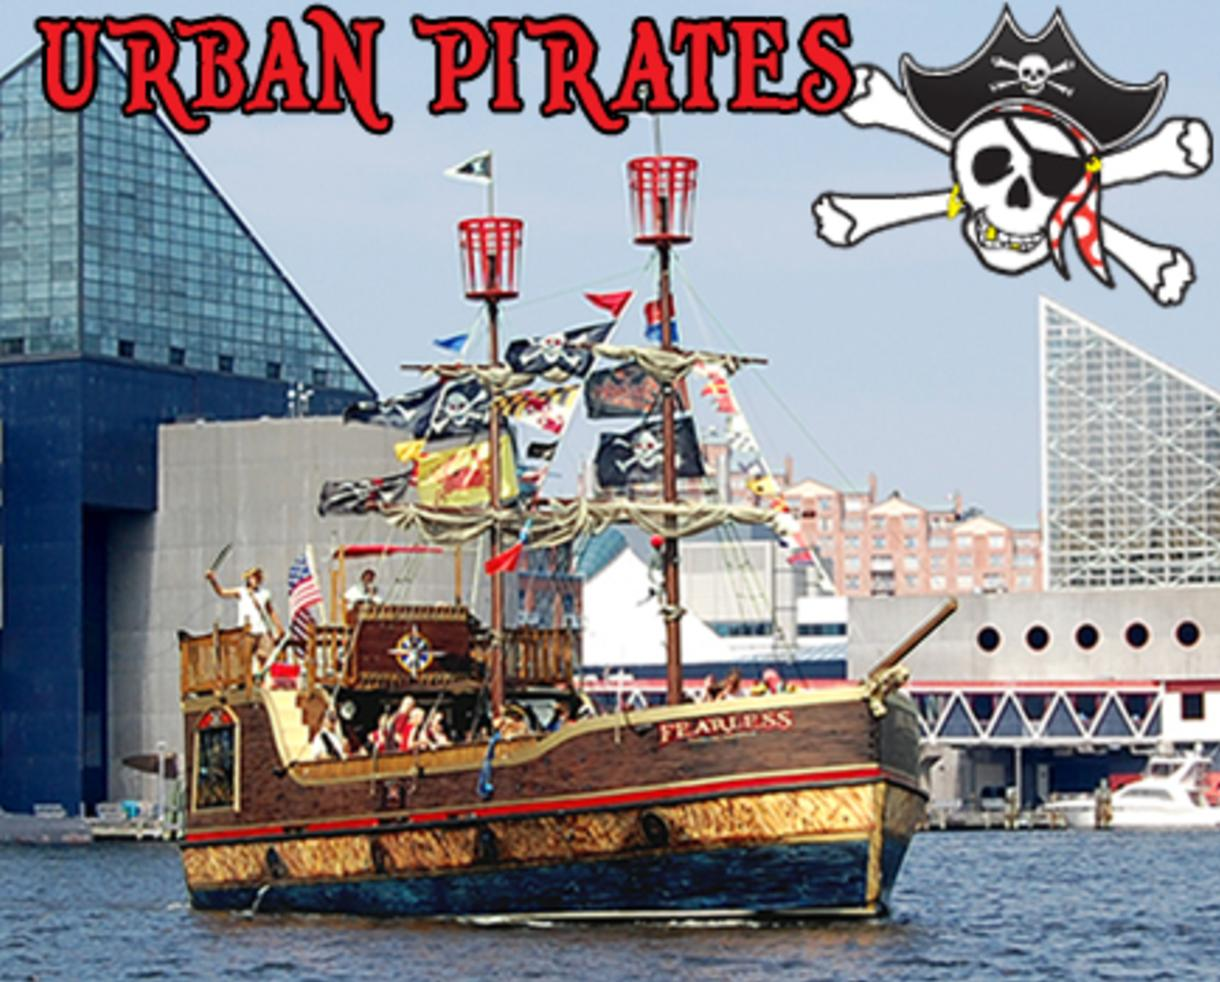 $44 for Urban Pirates Family 4-Pack Adventure Ticket (50% off)